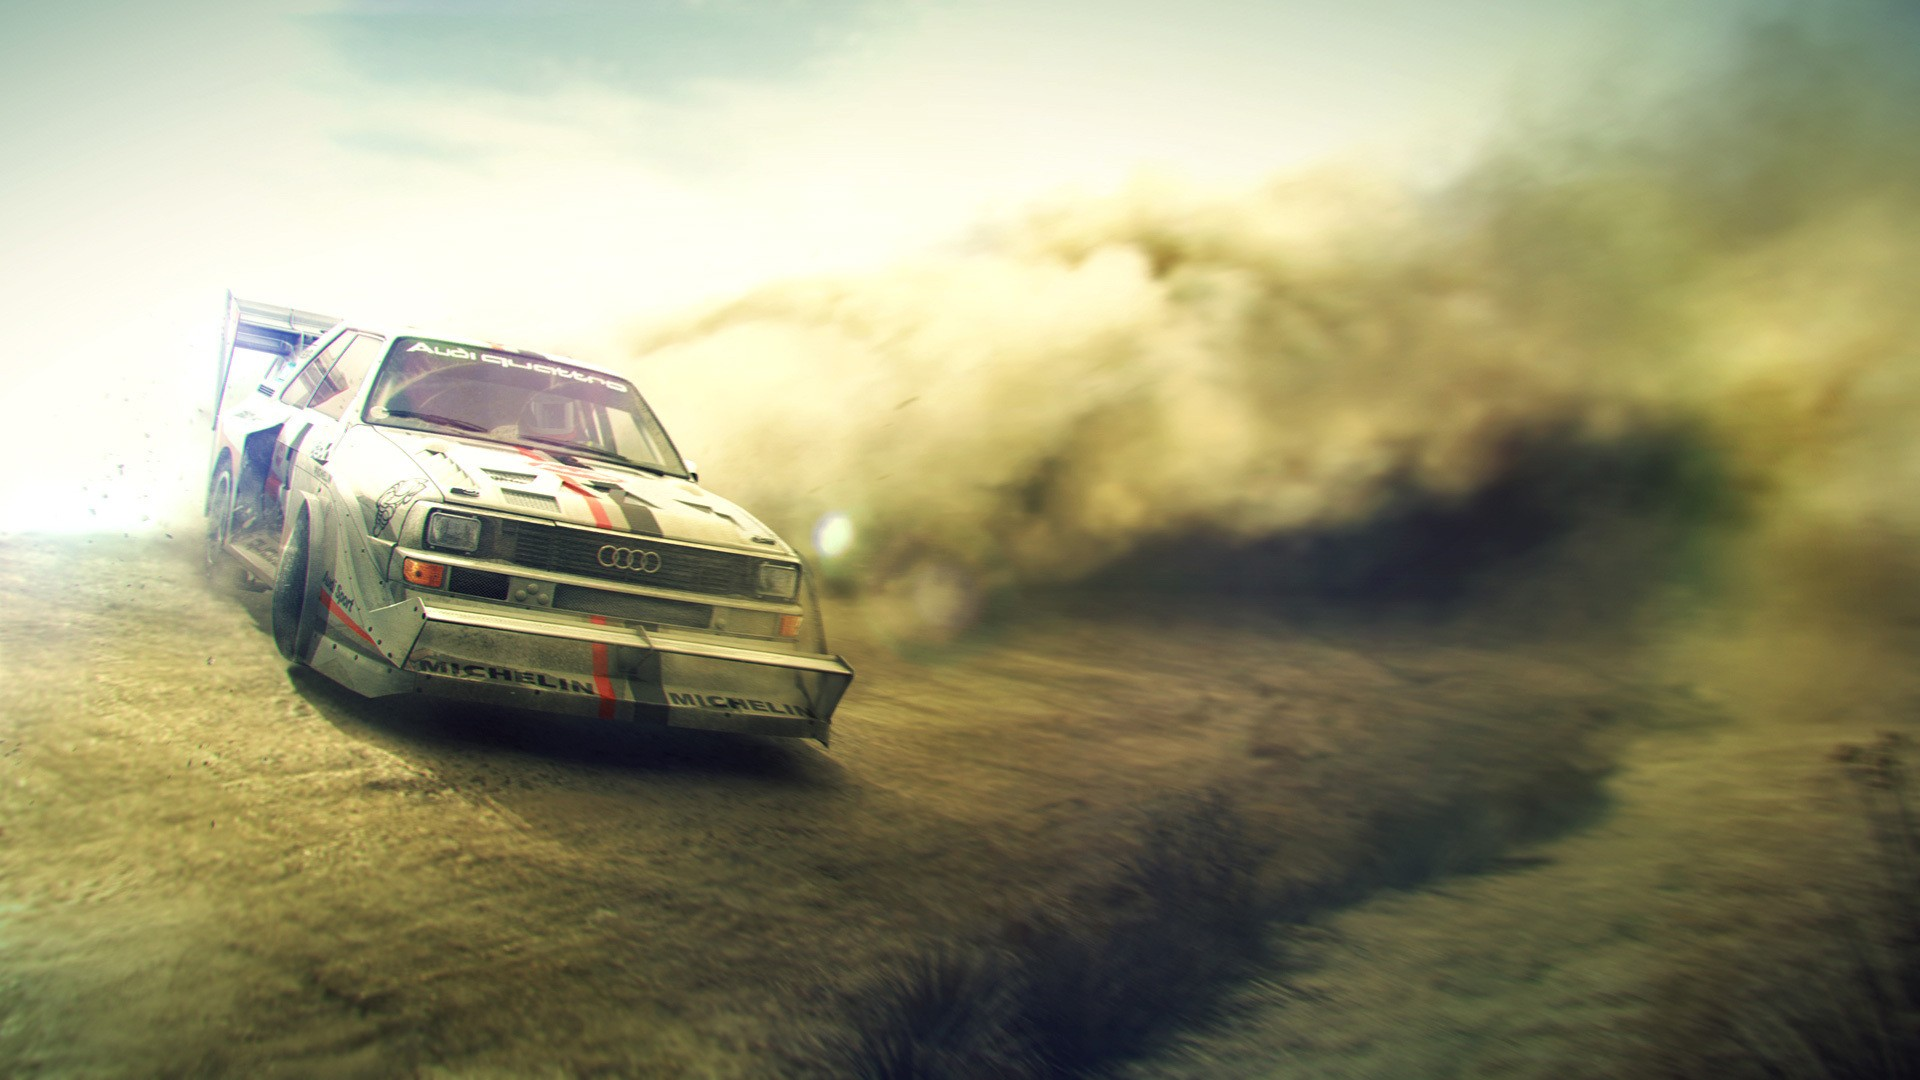 Hd Rally Car Wallpaper Wallpapersafari